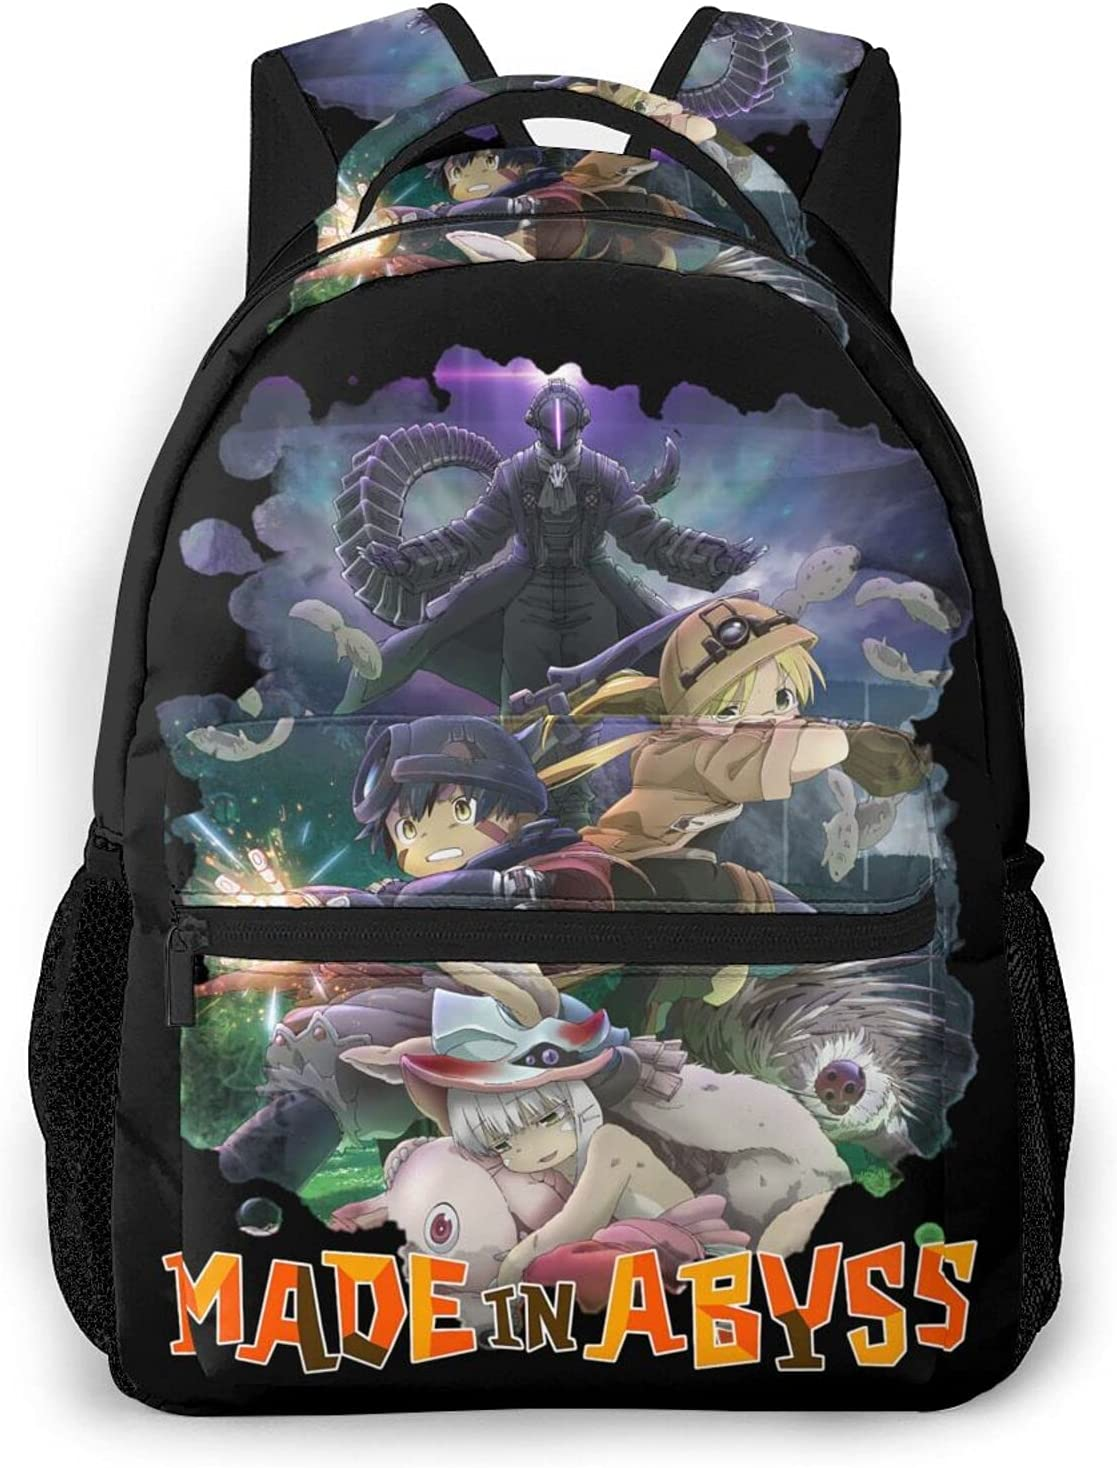 Made Financial sales sale In All items in the store Abyss Shoulders Bag Backpack Casual Bags Fashio Computer